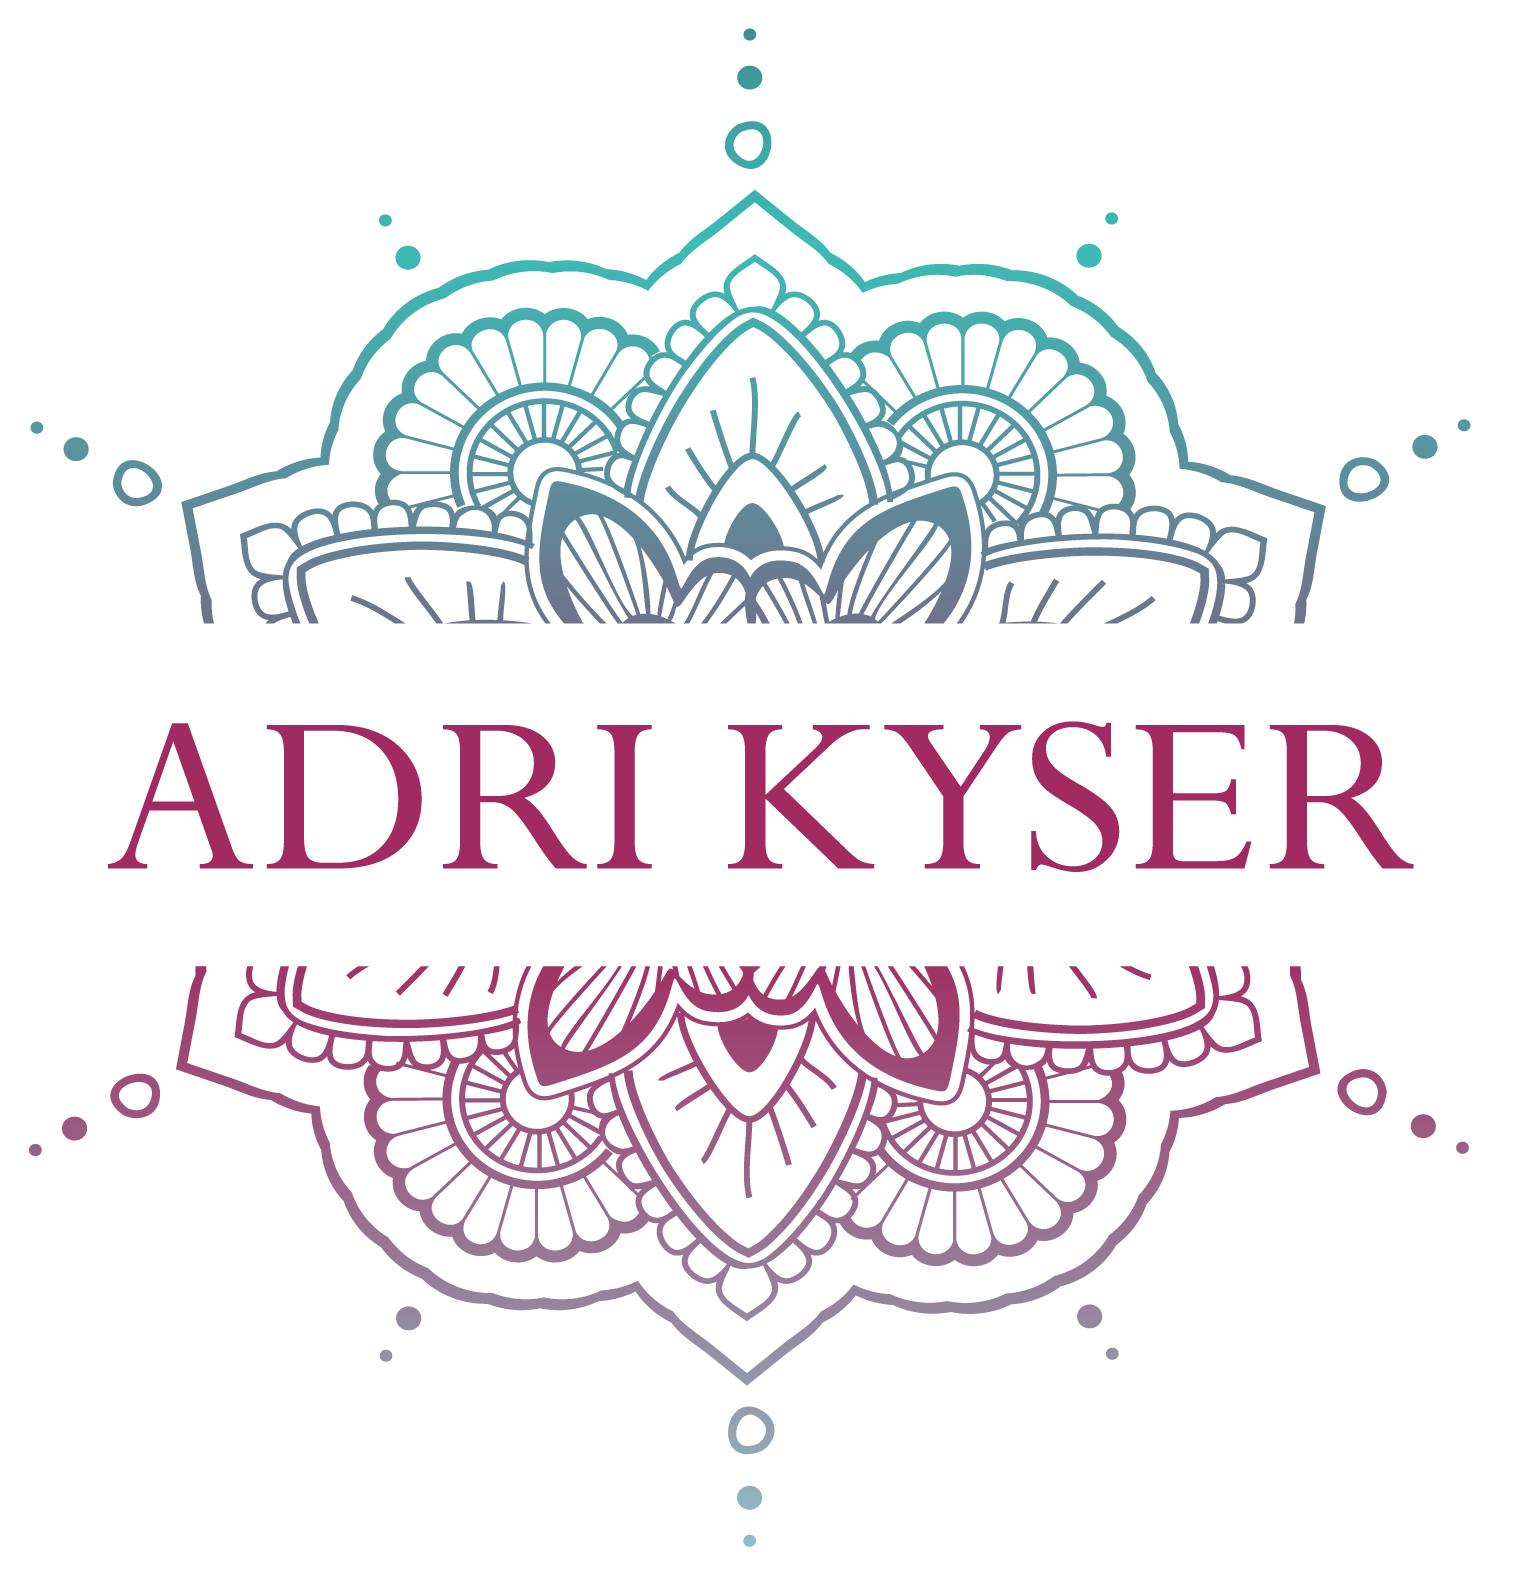 Adri Kyser – Enlightened Alchemy™ header image